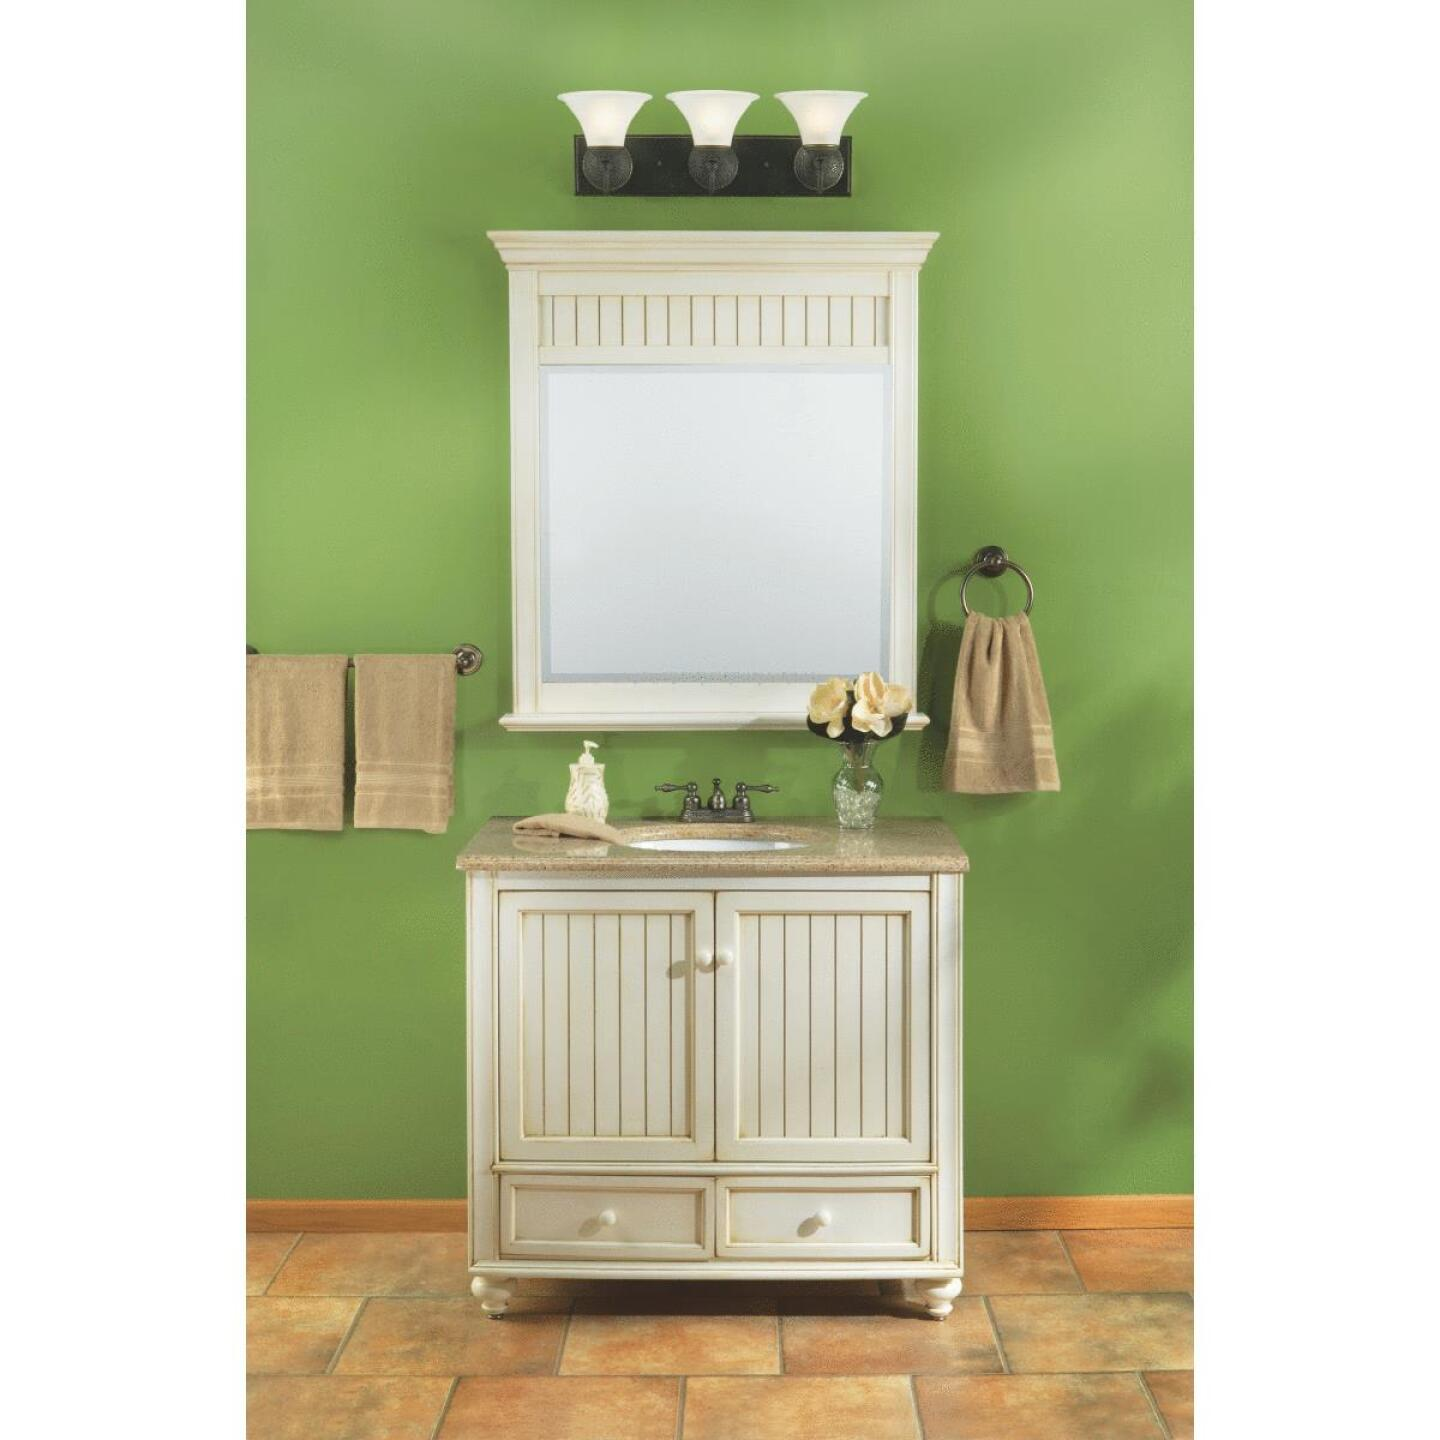 Sunny Wood Bristol Beach White 36 In. W x 34 In. H x 21 In. D Vanity Base, 2 Door/2 Drawer Image 2